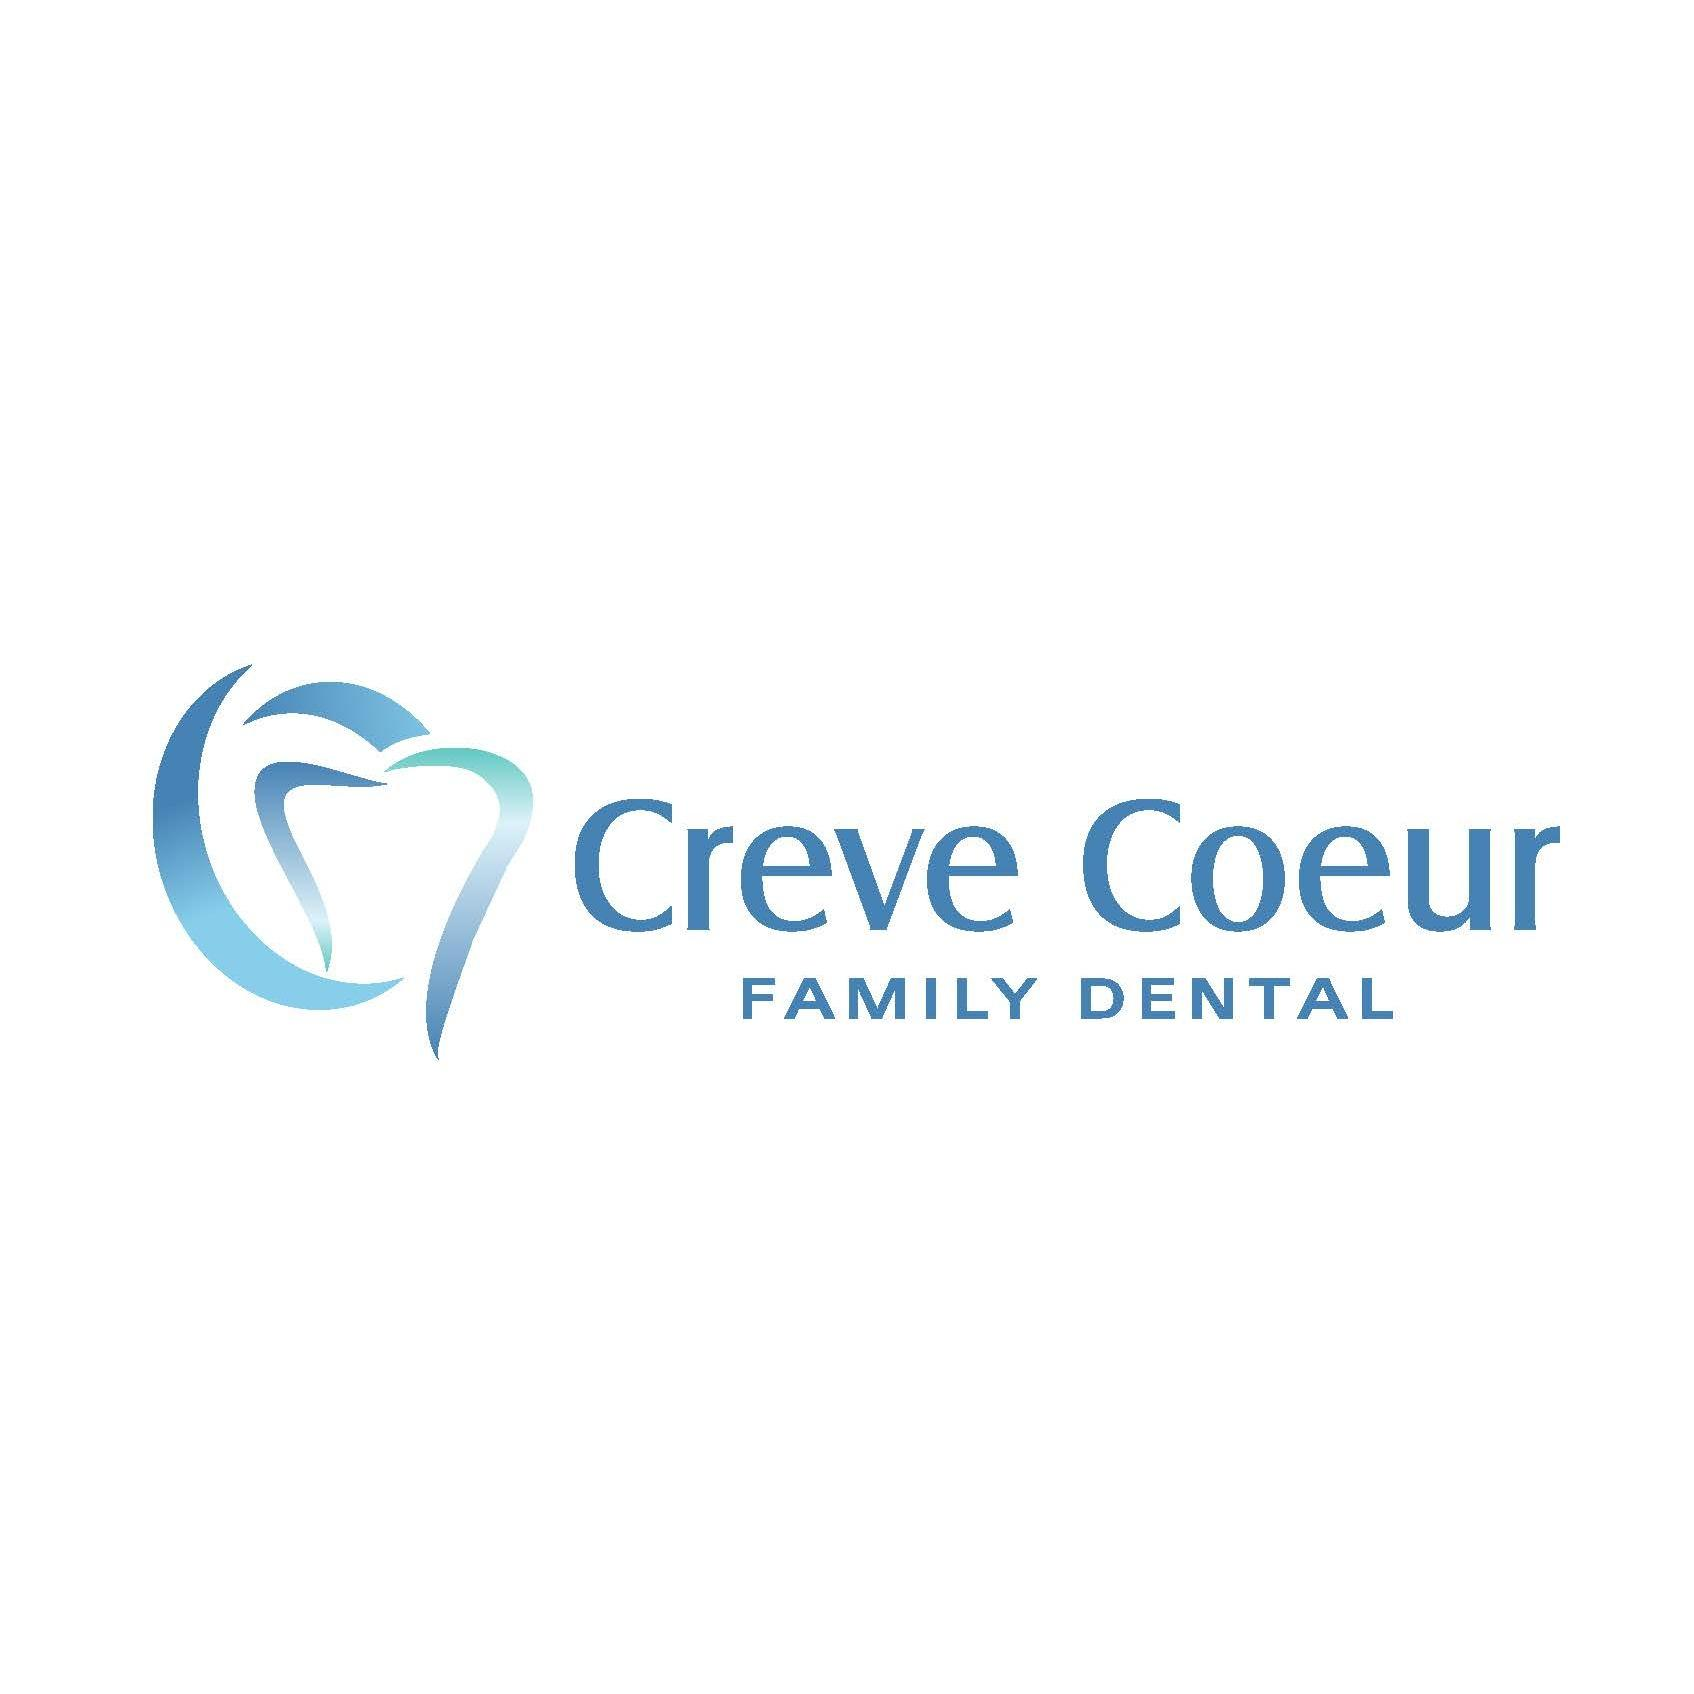 Creve Coeur Family Dental image 8